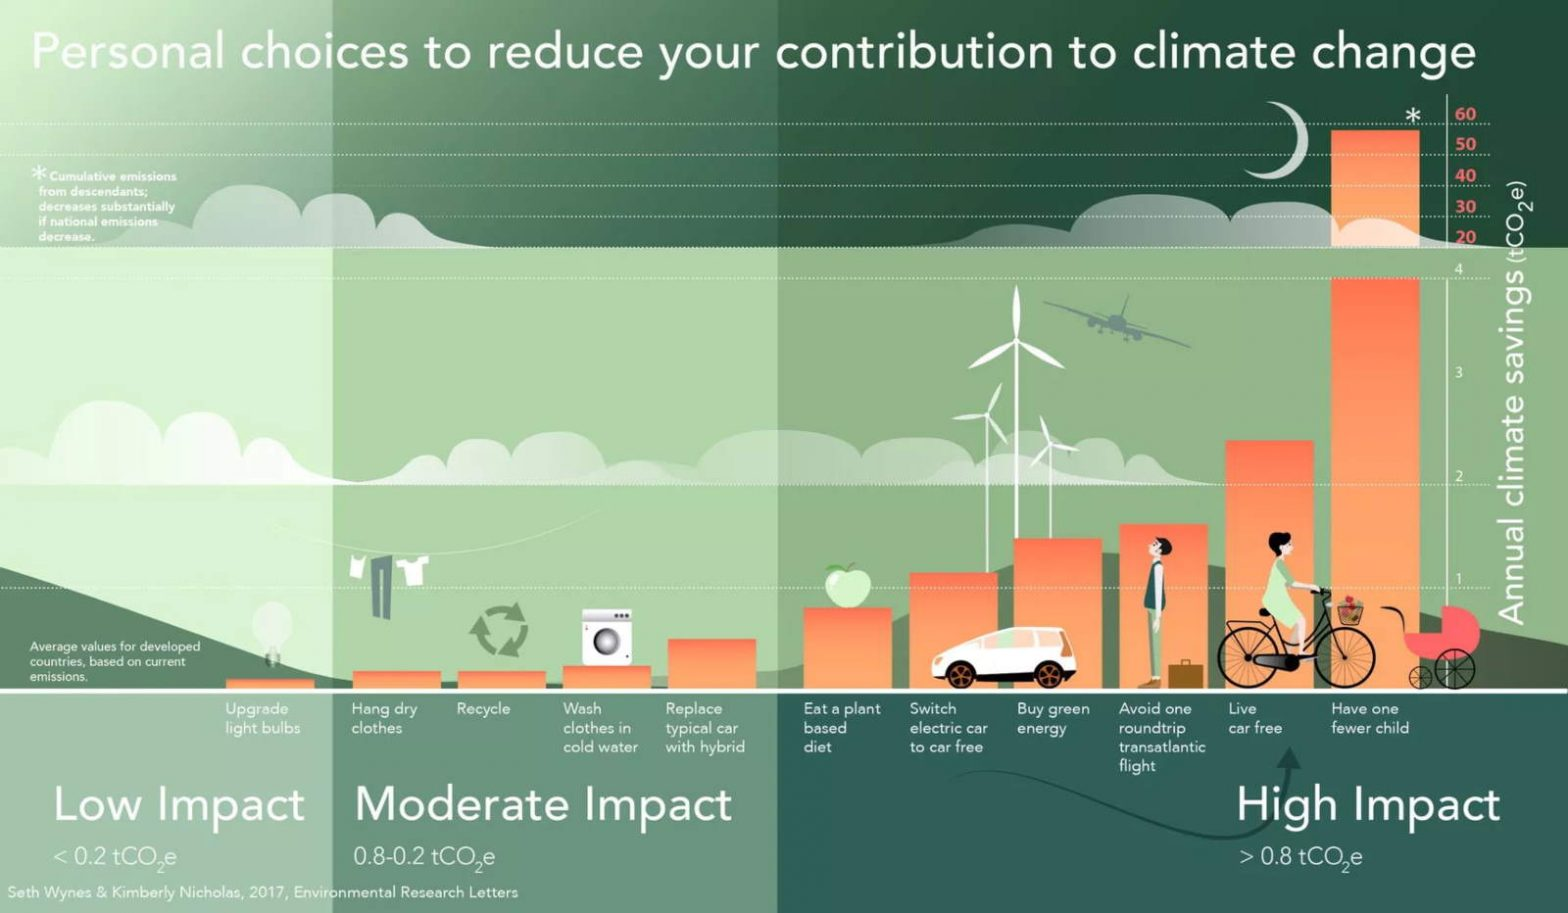 How your personal choices affect your contribution to climate change